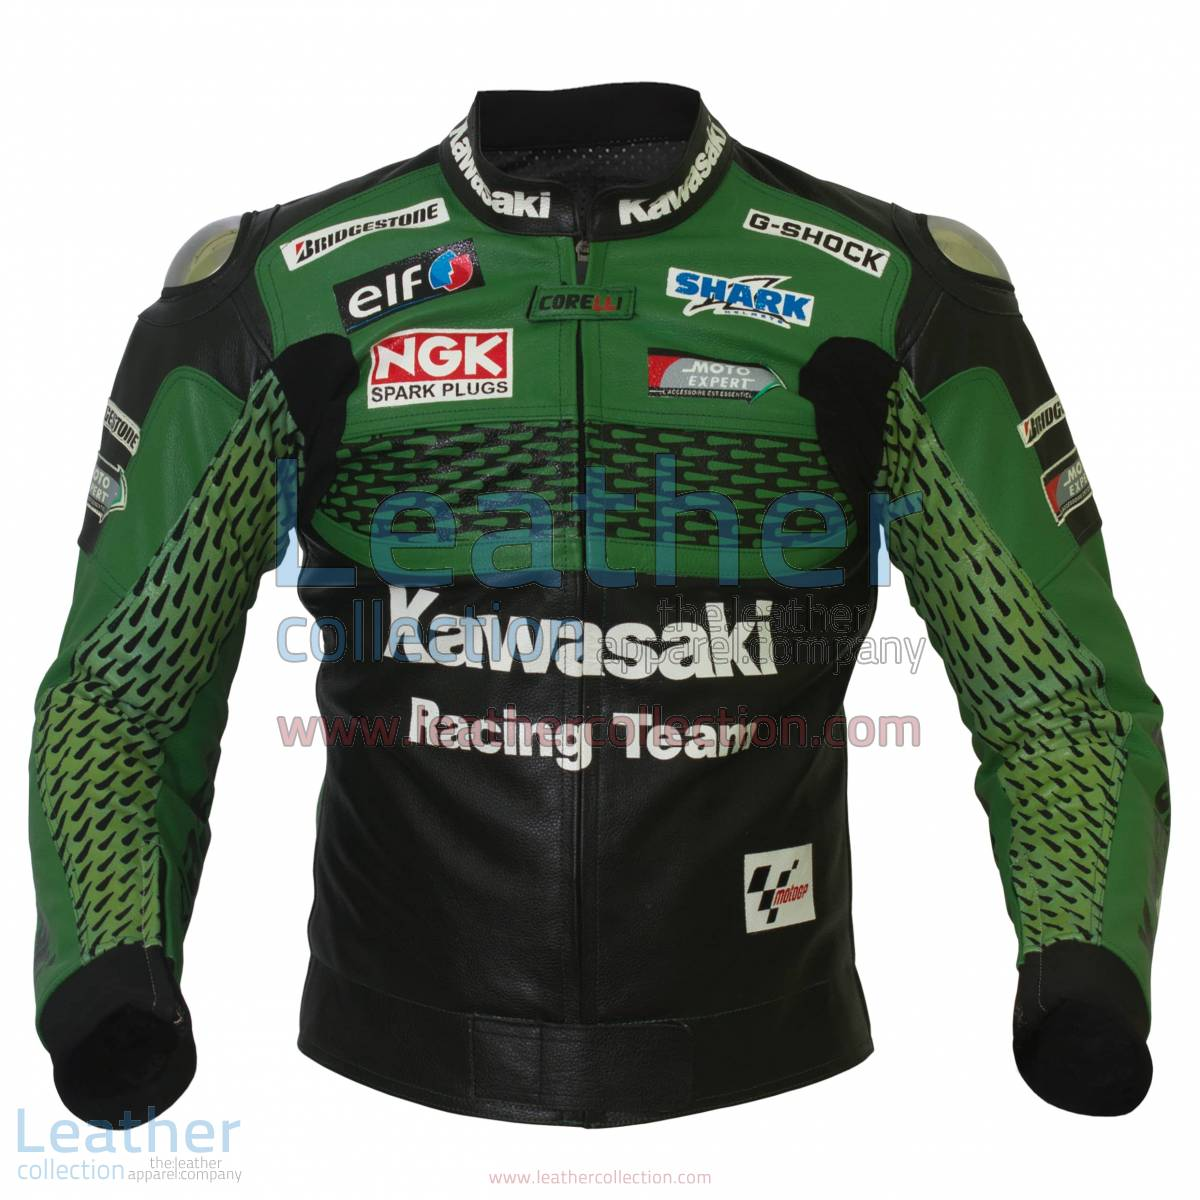 Kawasaki Racing Team Leather Jacket | kawasaki racing jacket